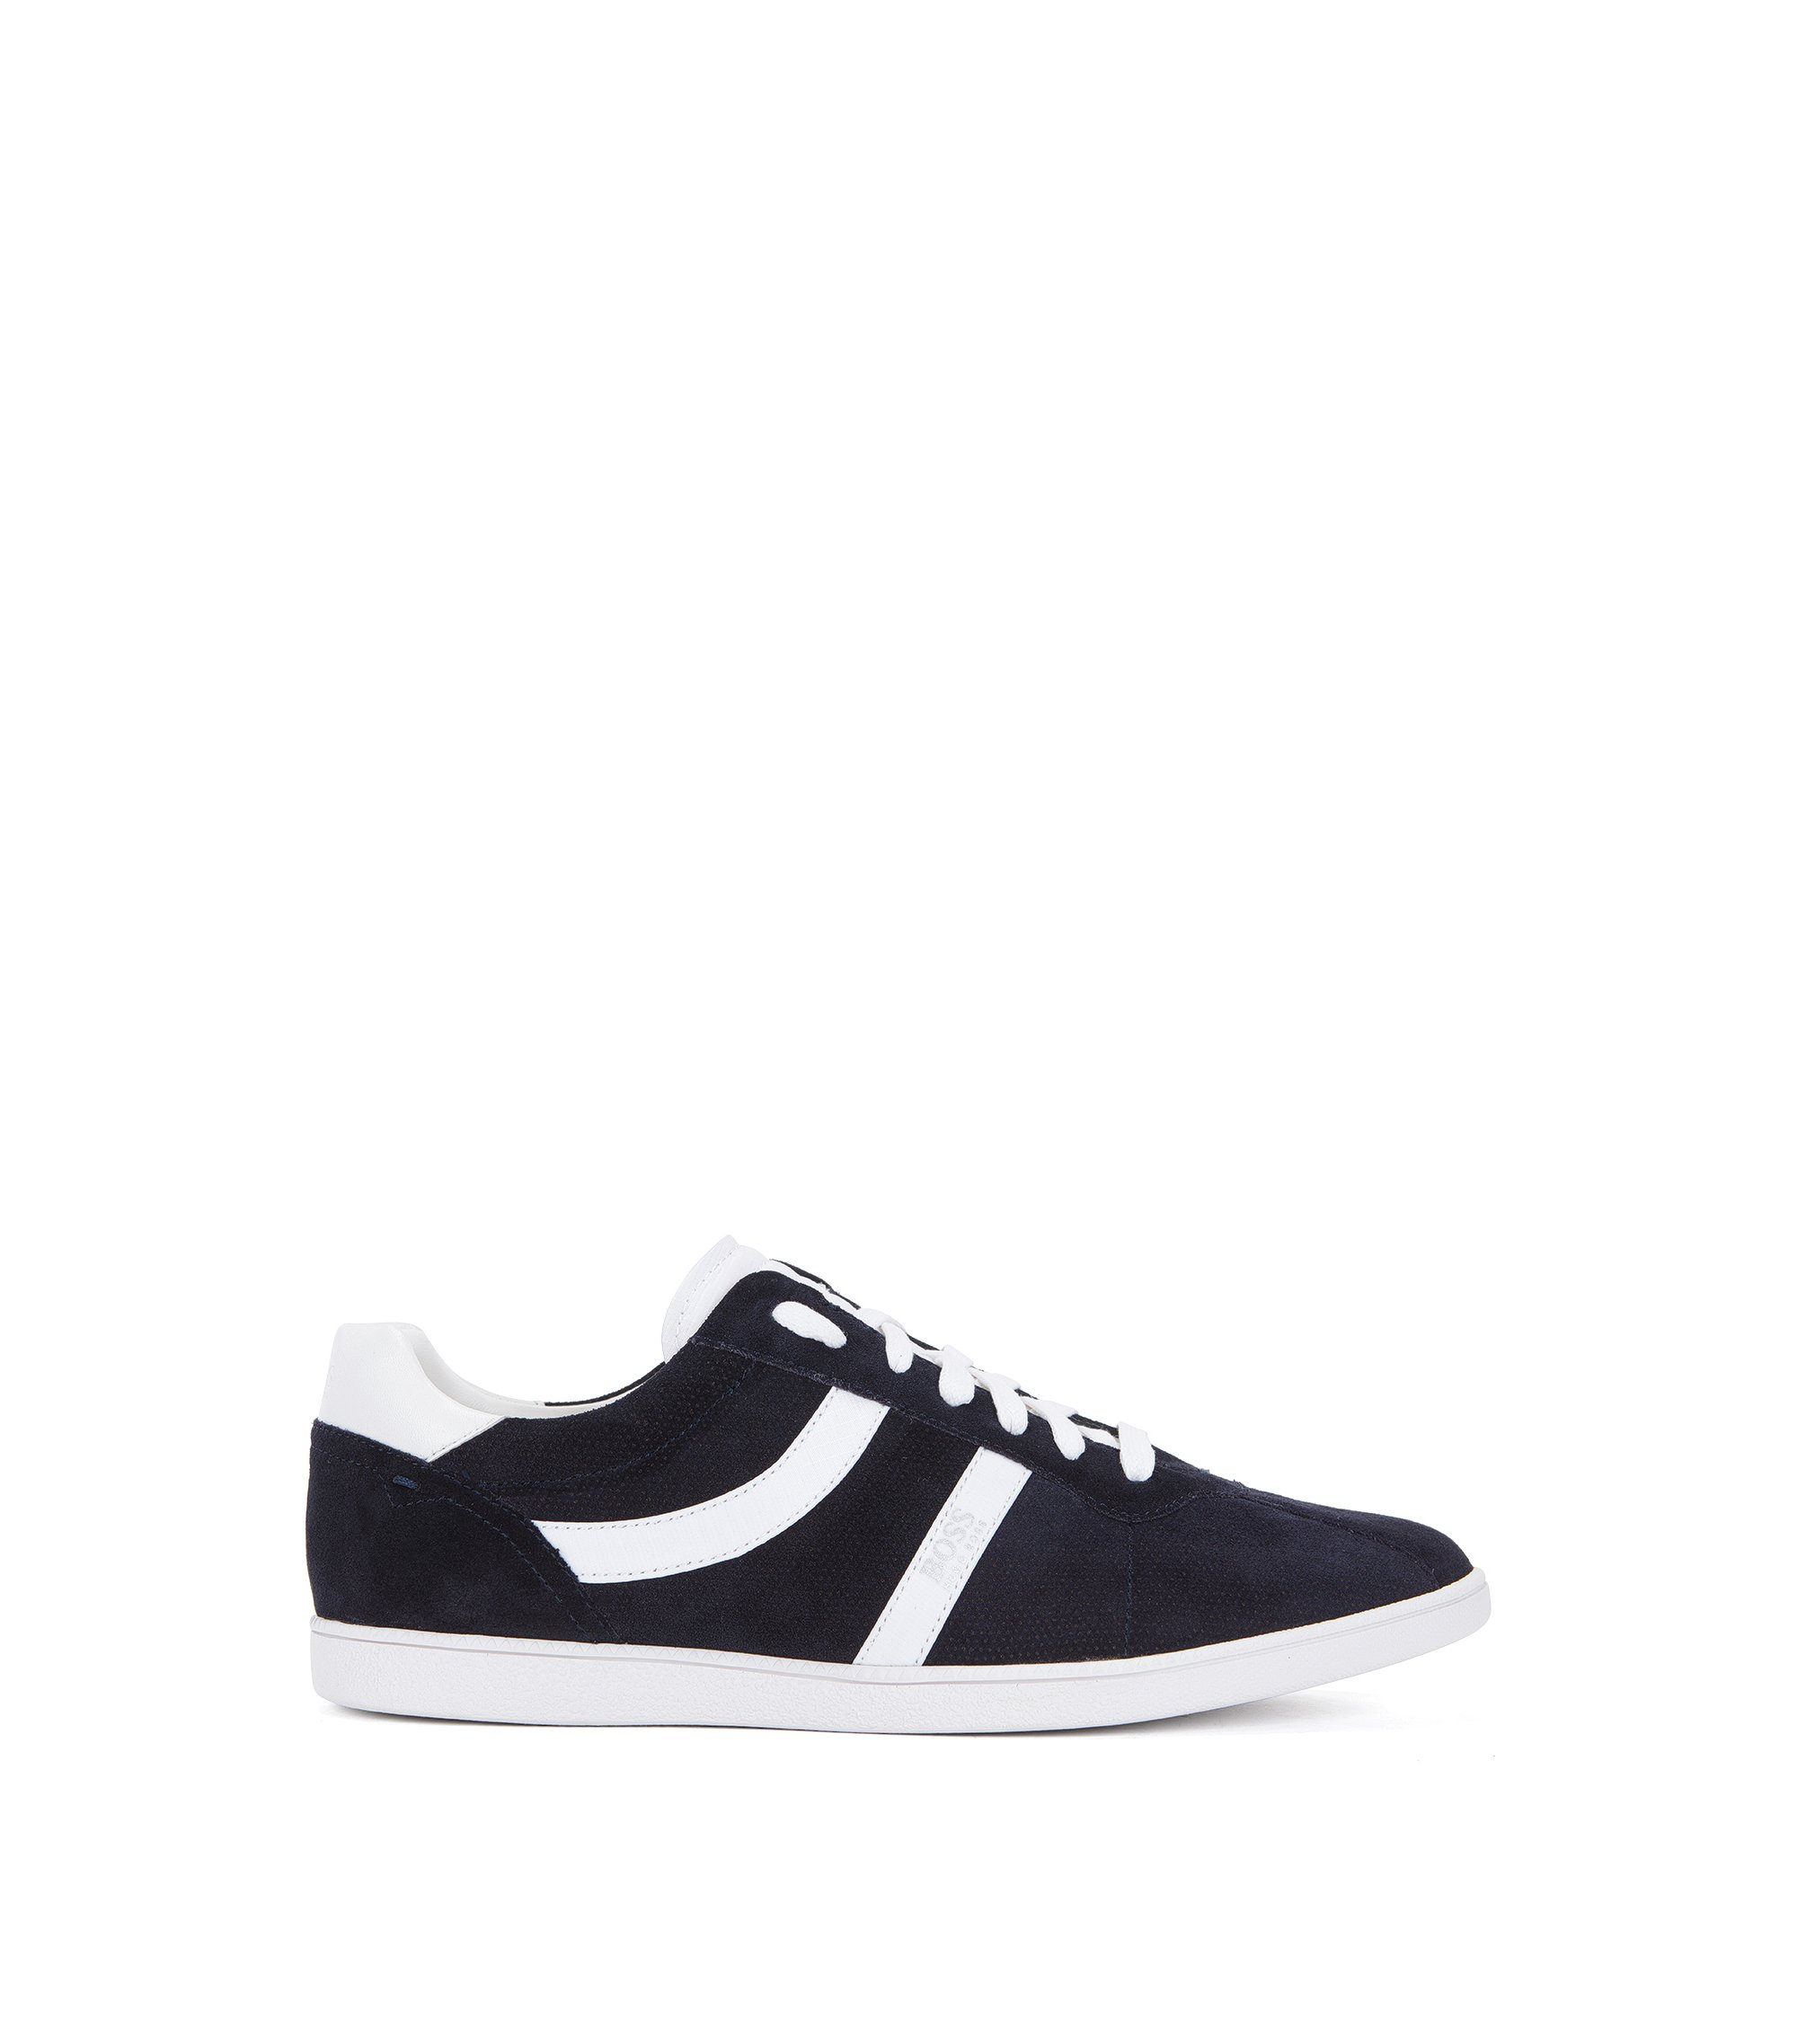 Sneakers low-top in pelle scamosciata liscia e traforata, Blu scuro